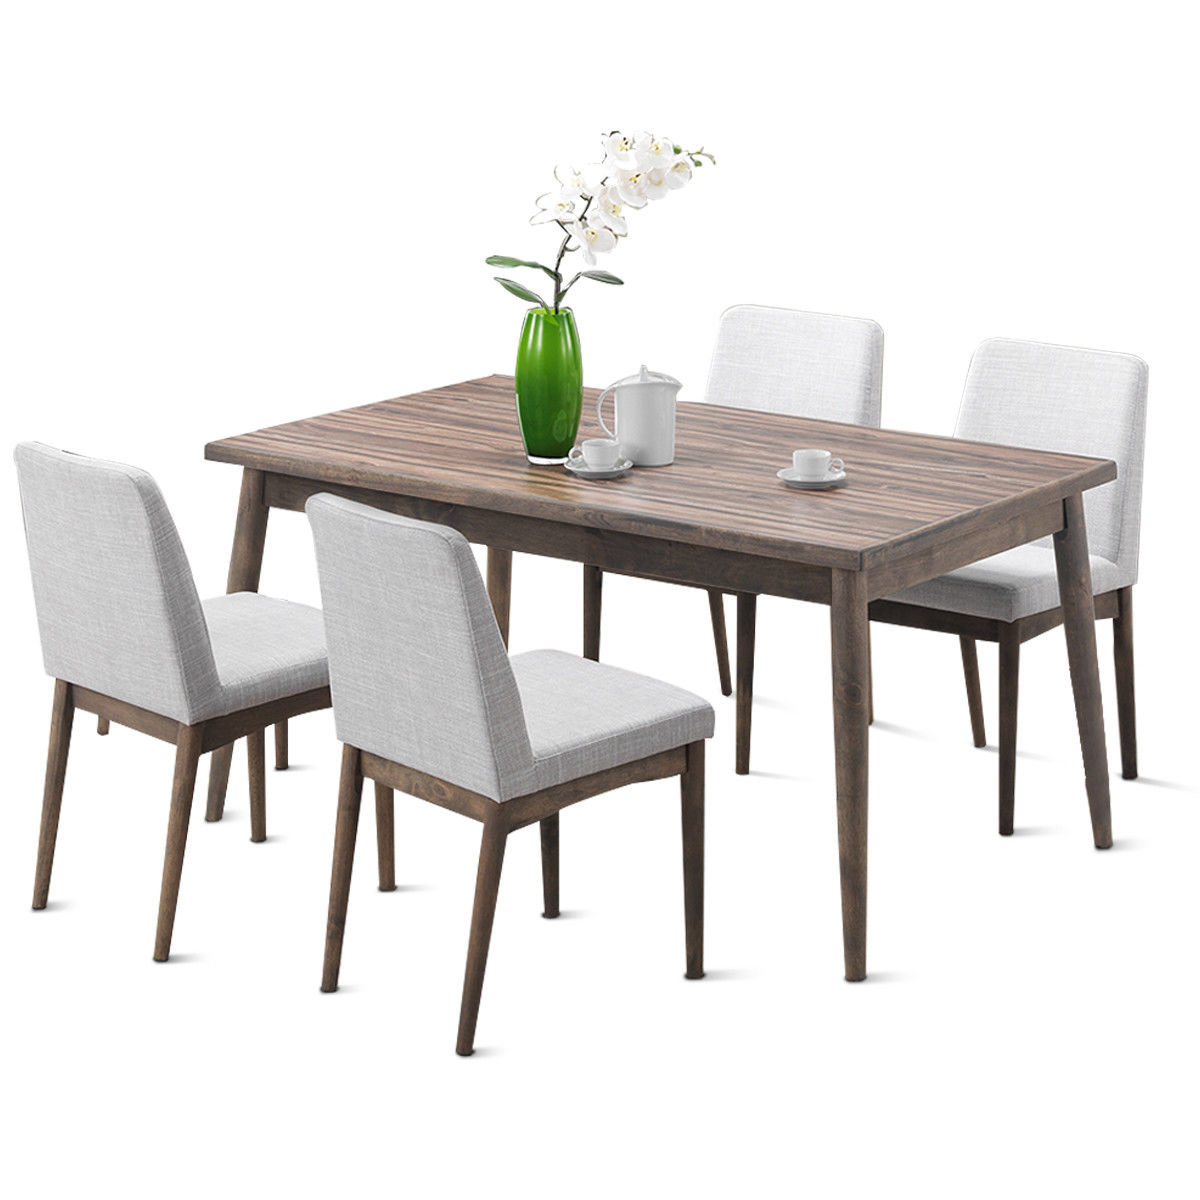 Most Recent Liles 5 Piece Breakfast Nook Dining Sets Intended For Easterling 5 Piece Dining Set (View 12 of 25)